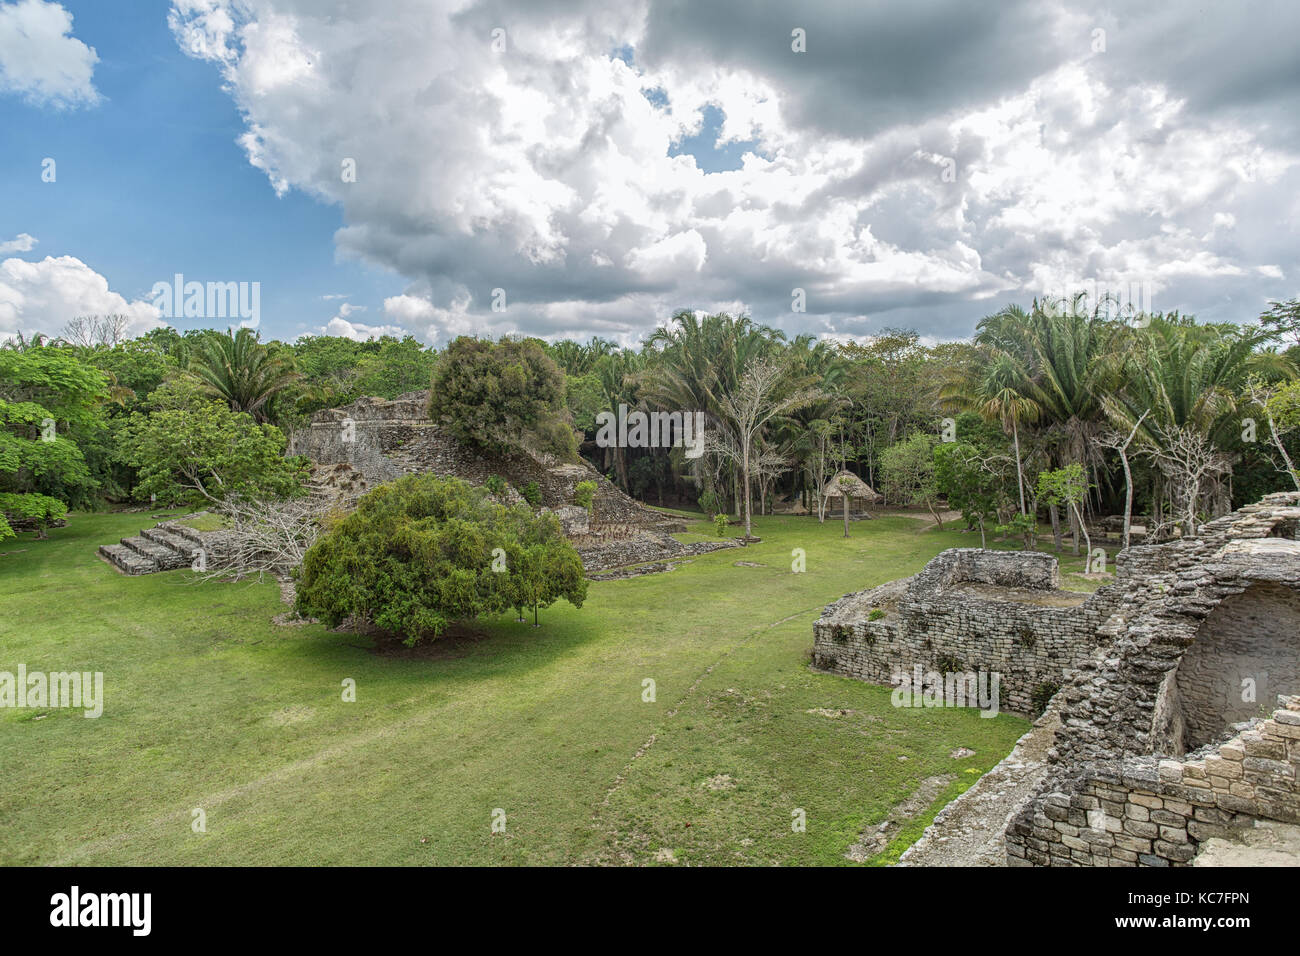 Kohunlich maya archaeological site in Quintana Roo Mexico - Stock Image